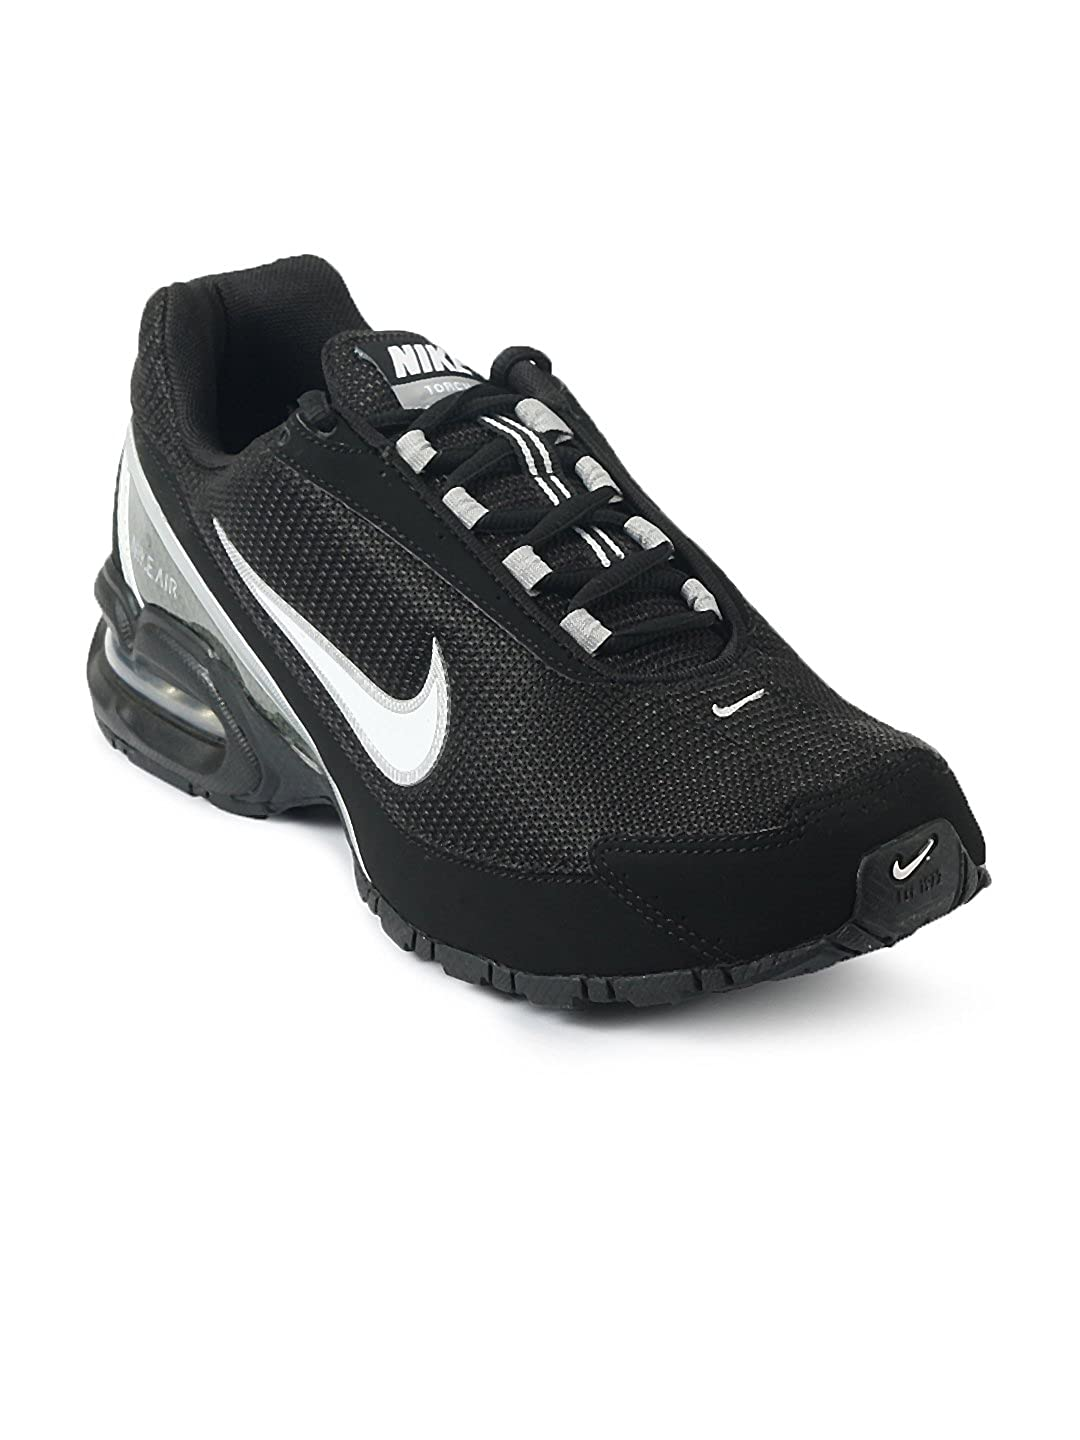 daf570a0a4 Amazon.com | Nike Air Max Torch 3 Men's Running Shoes | Road Running